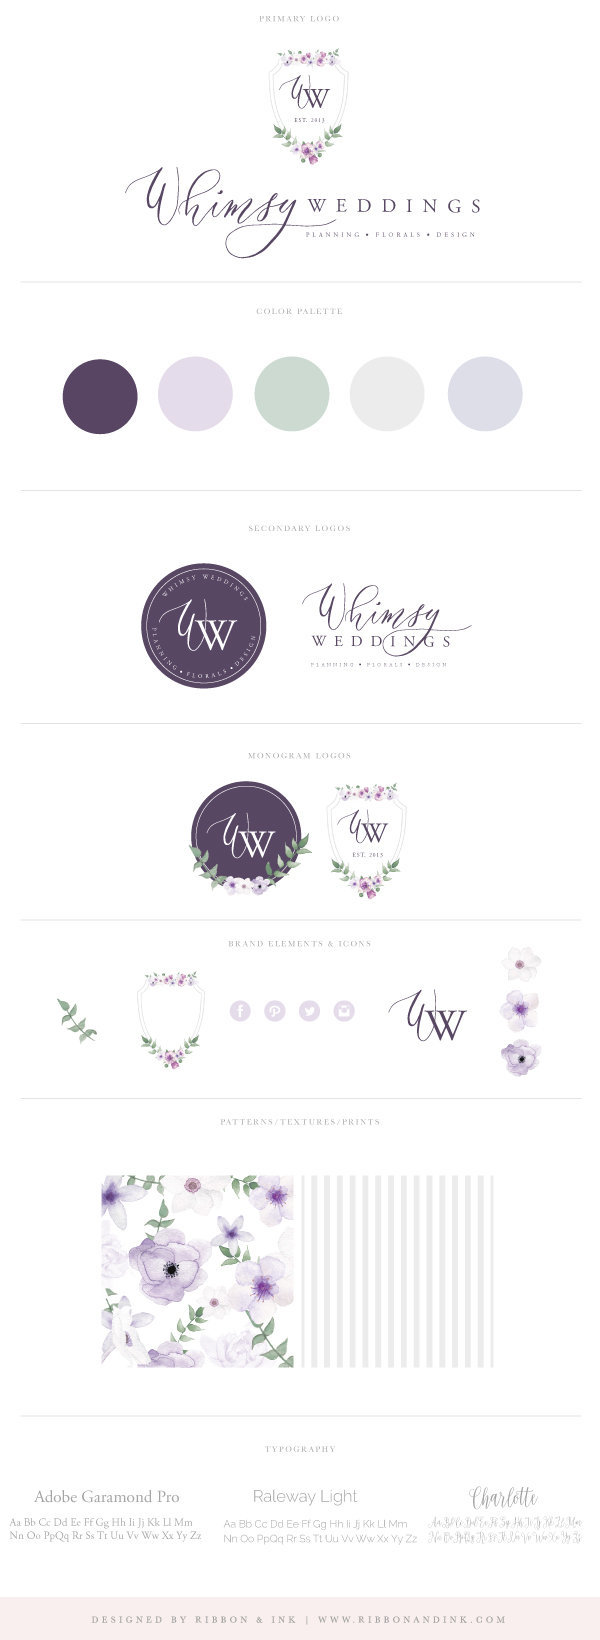 WhimsyWeddings_BrandBoard_v02